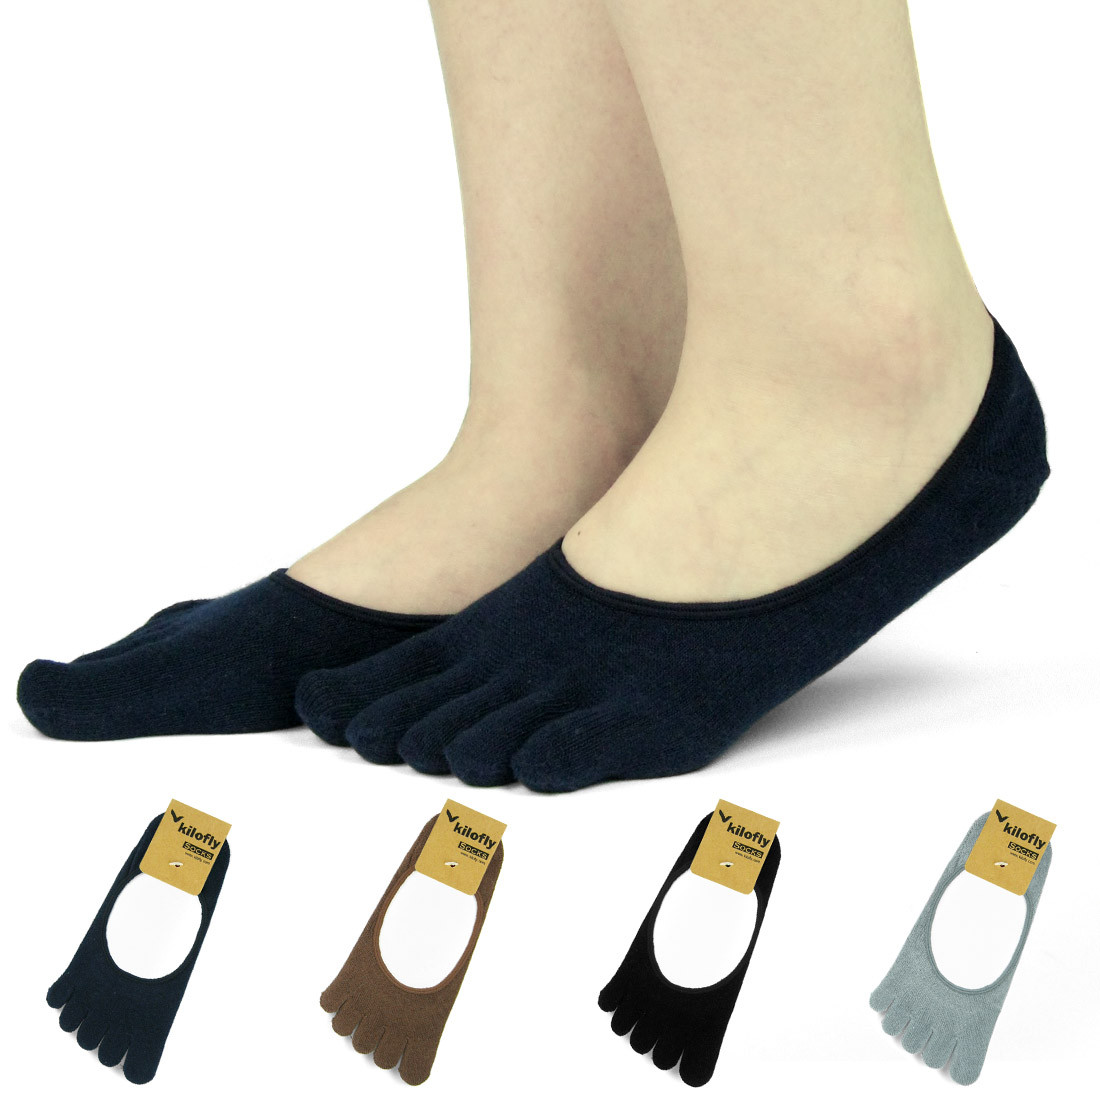 kilofly Women s Low Cut No Show Full Toe Socks Value Pack  Set of 4 Pairs.  Loading zoom d965ffa156